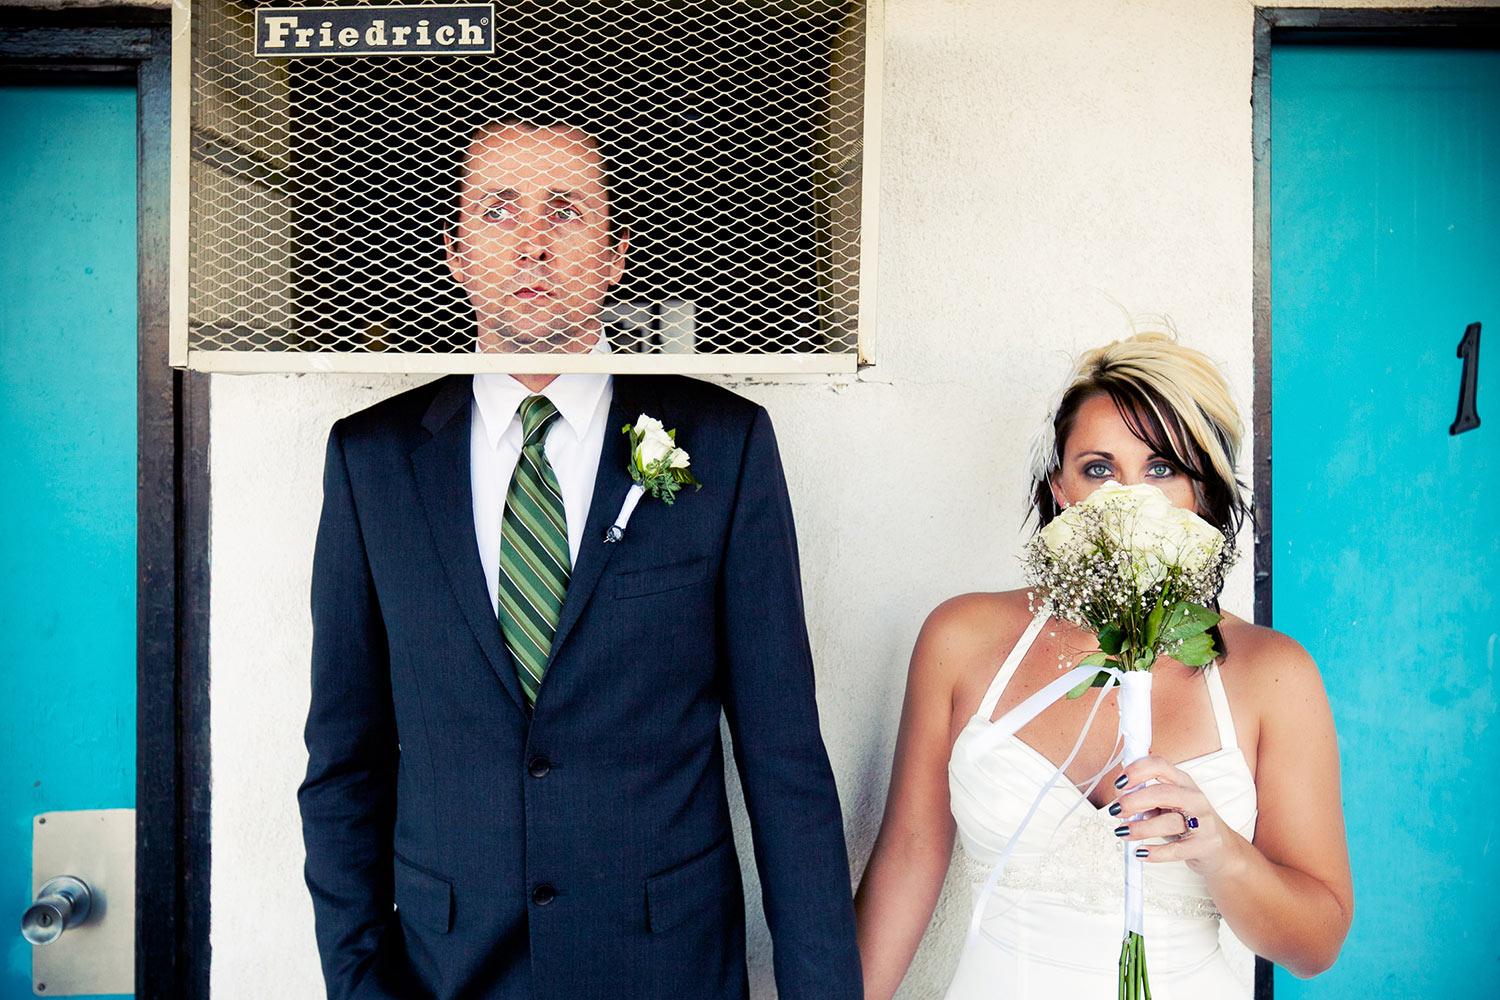 Silly portrait of groom in AC grille with bride hiding behind bouquet, by Callaway Gable